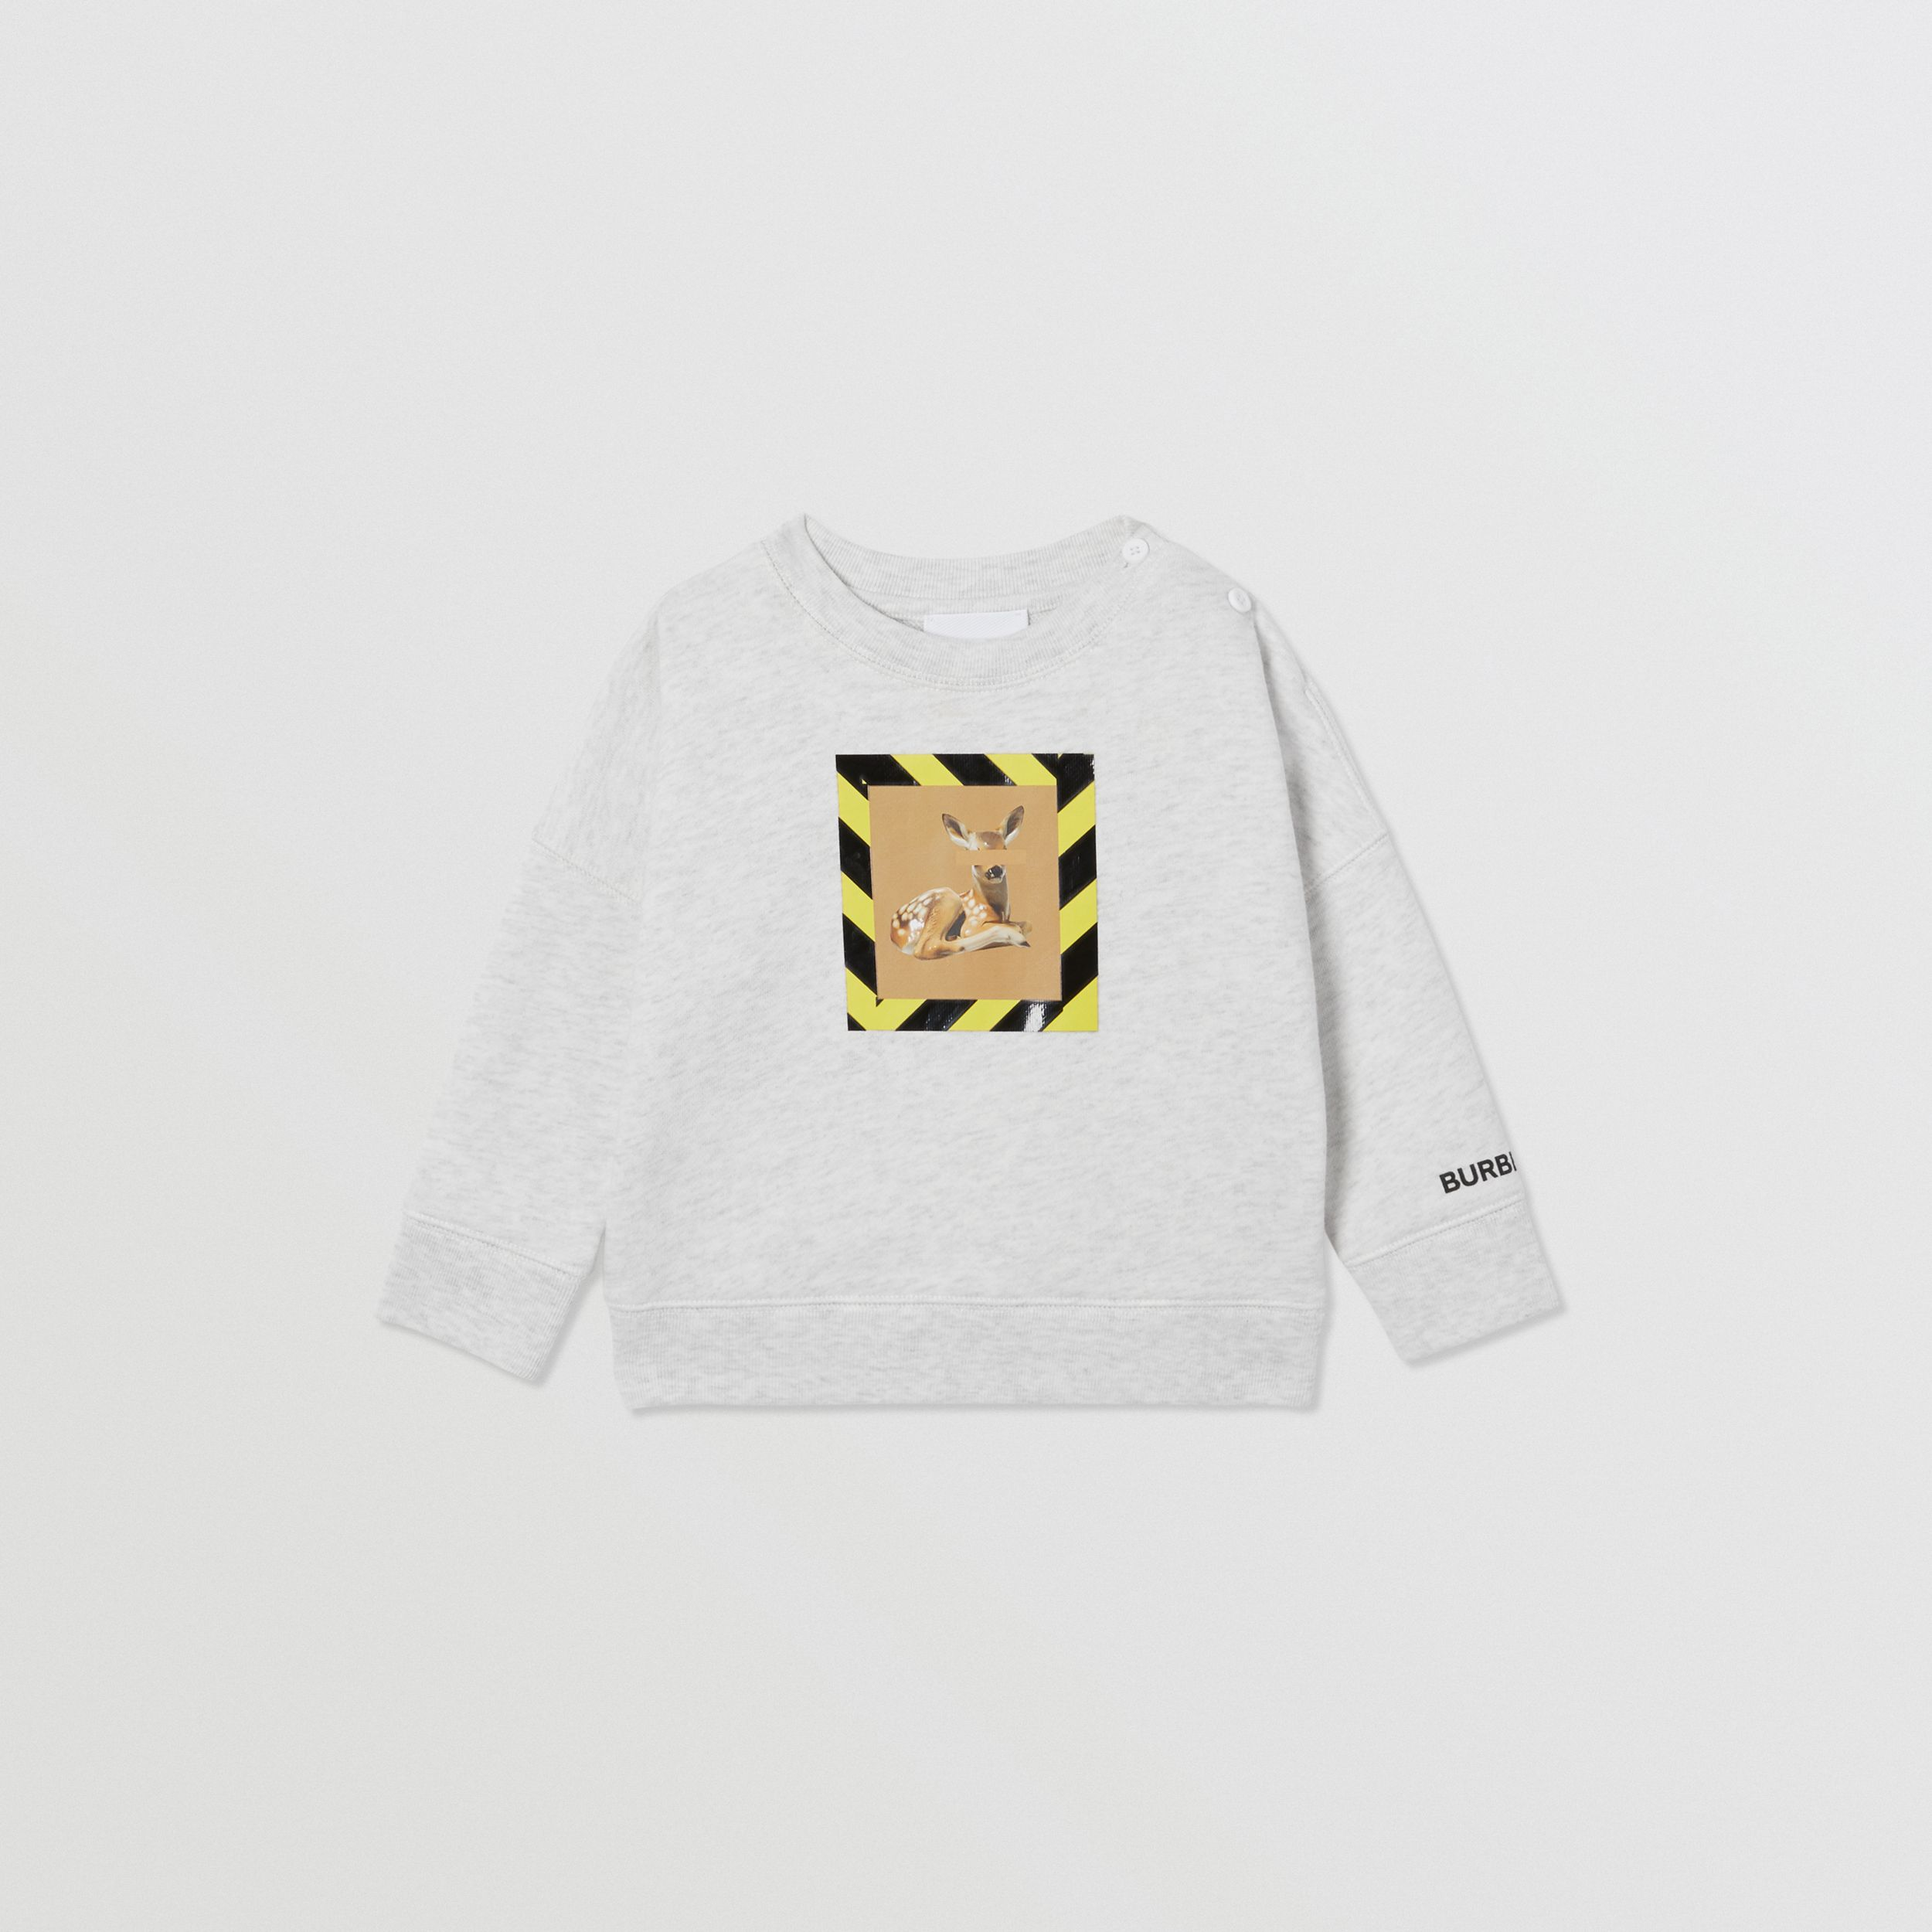 Deer Print Cotton Sweatshirt in White Melange - Children | Burberry Australia - 1